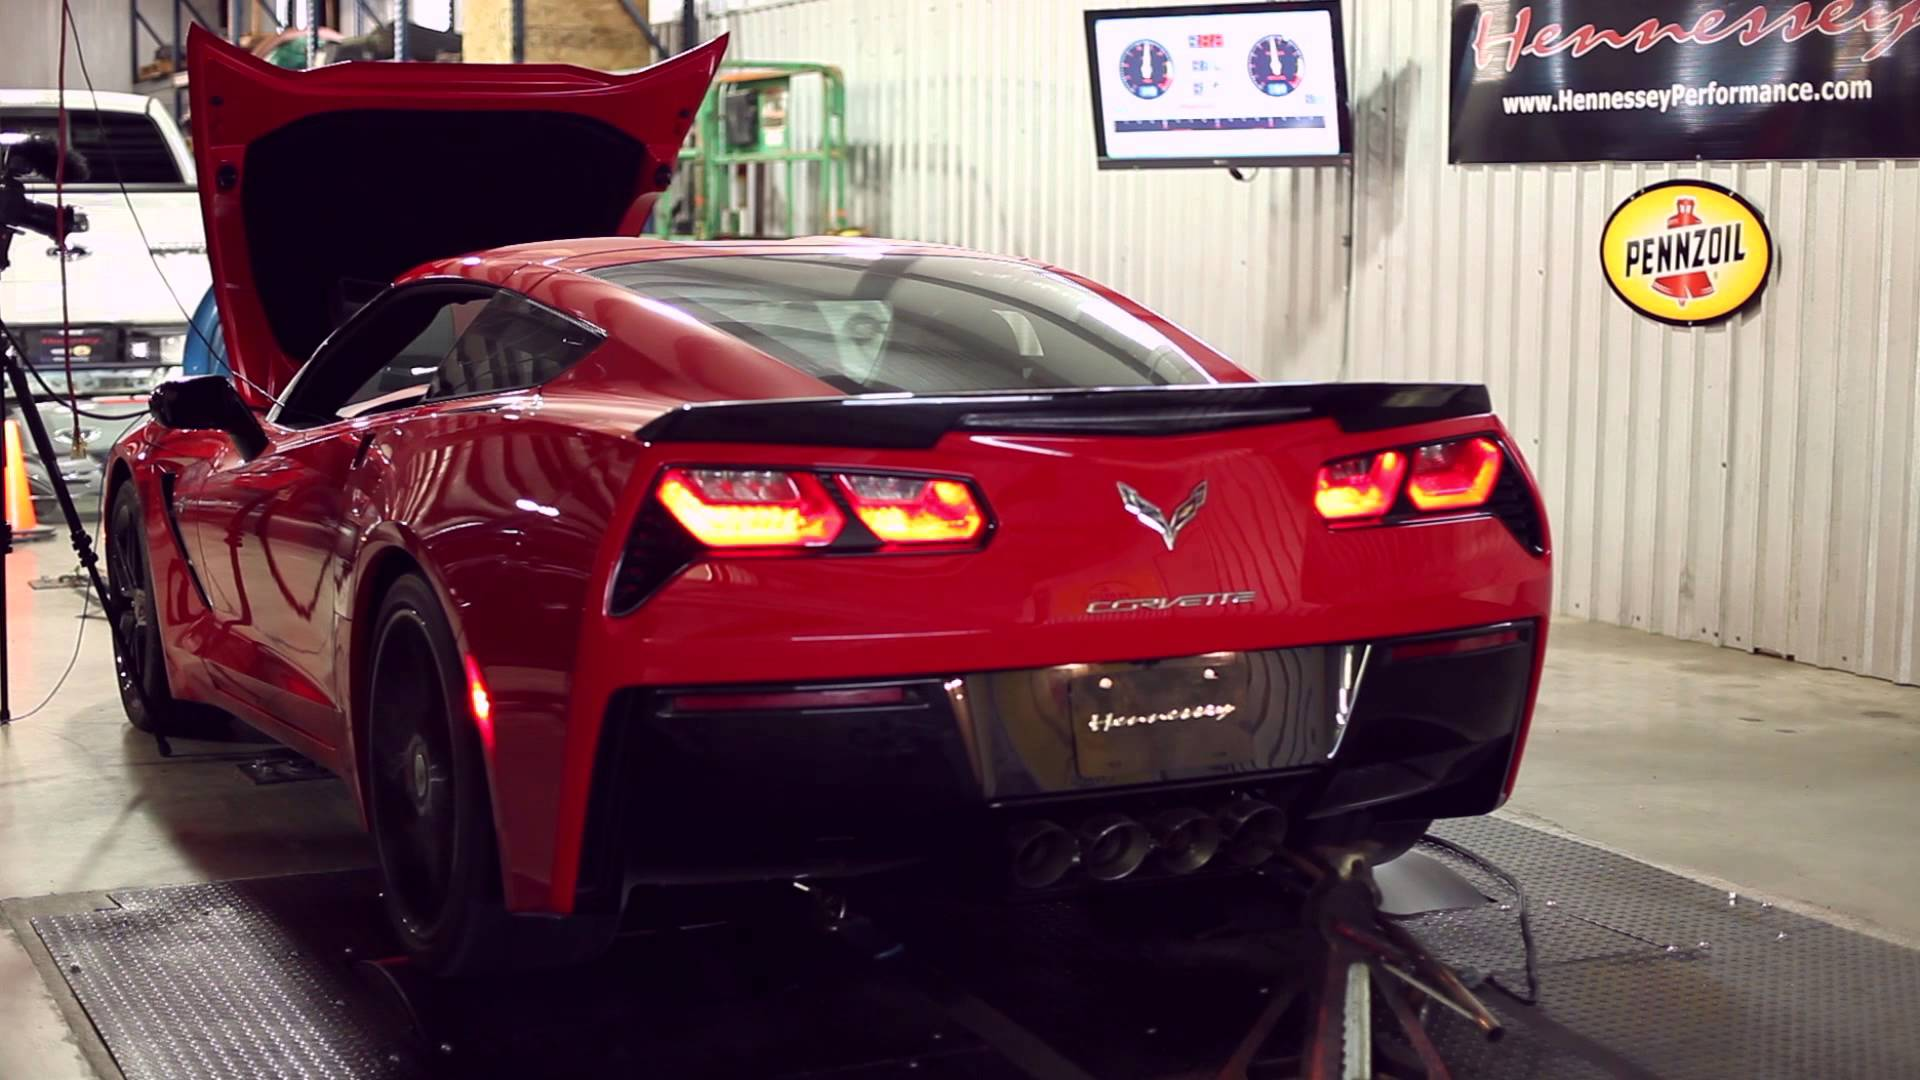 HPE700 Twin Turbo C7 Corvette Chassis Dyno Testing